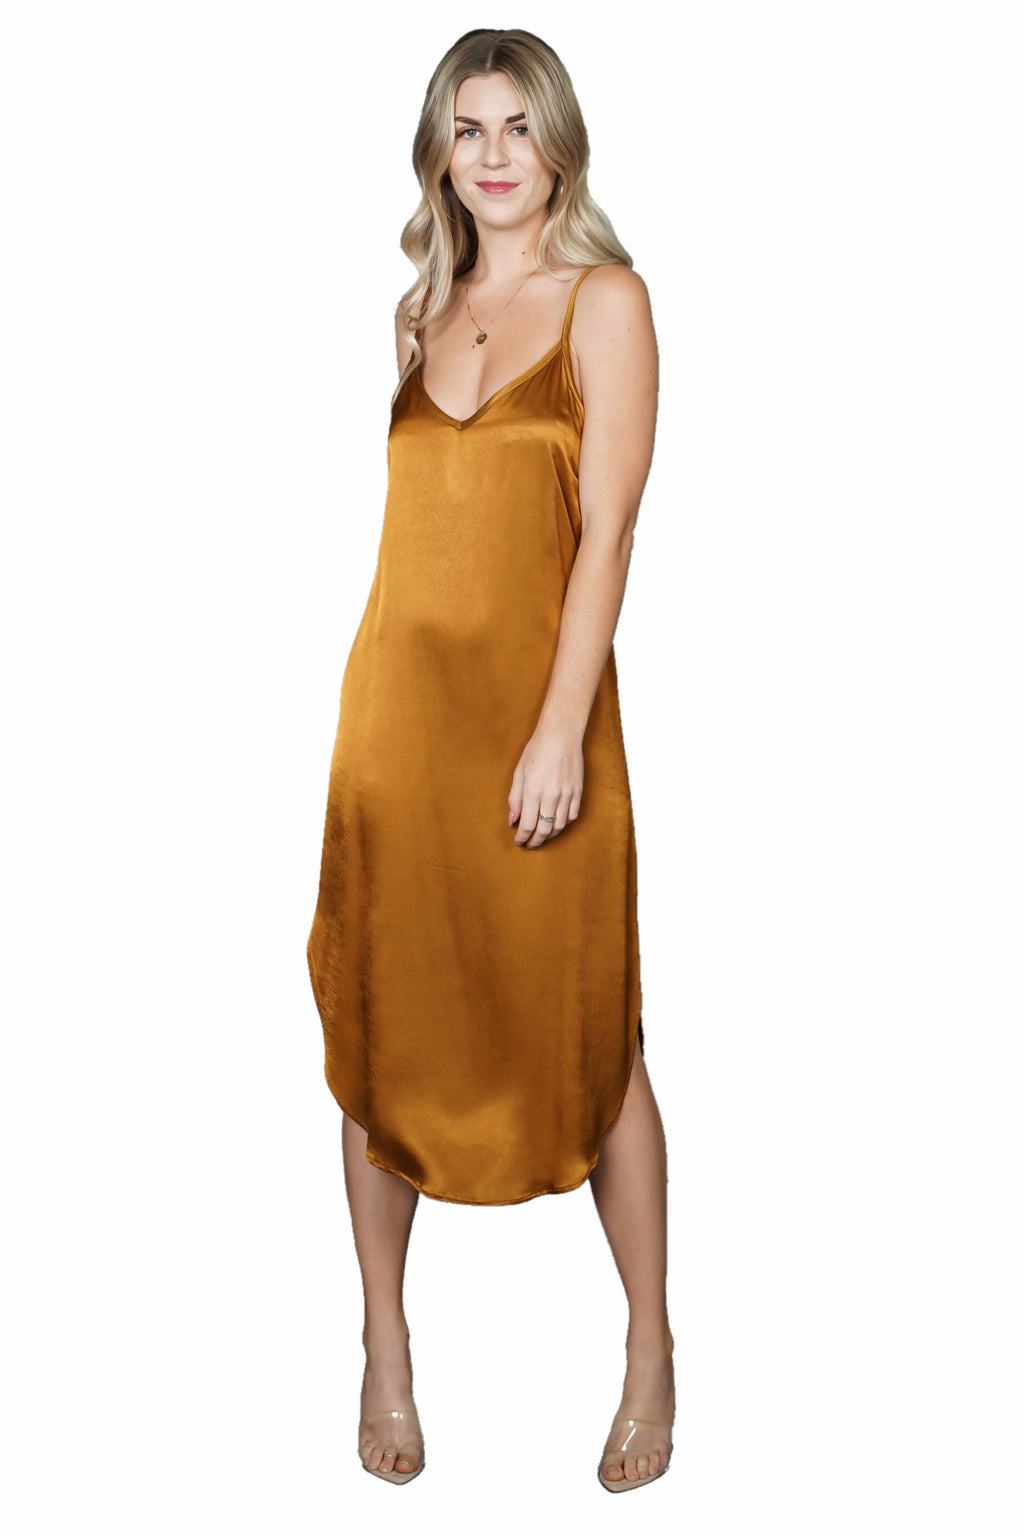 Tina + Jo Midi Slip Dress